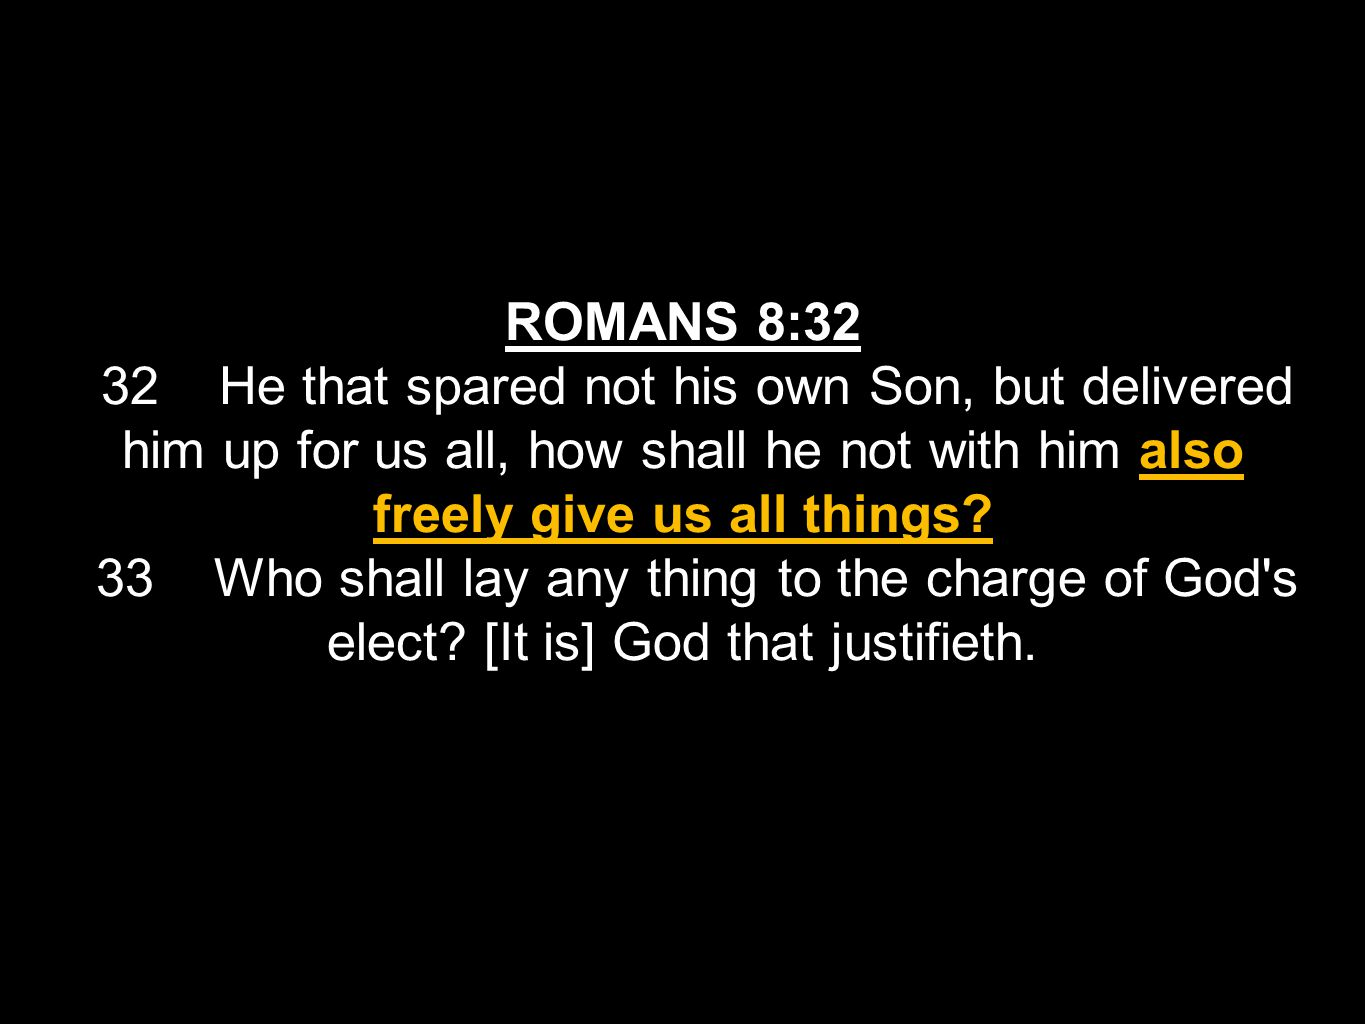 ROMANS 8:32 32 He that spared not his own Son, but delivered him up for us all, how shall he not with him also freely give us all things? 33 Who shall